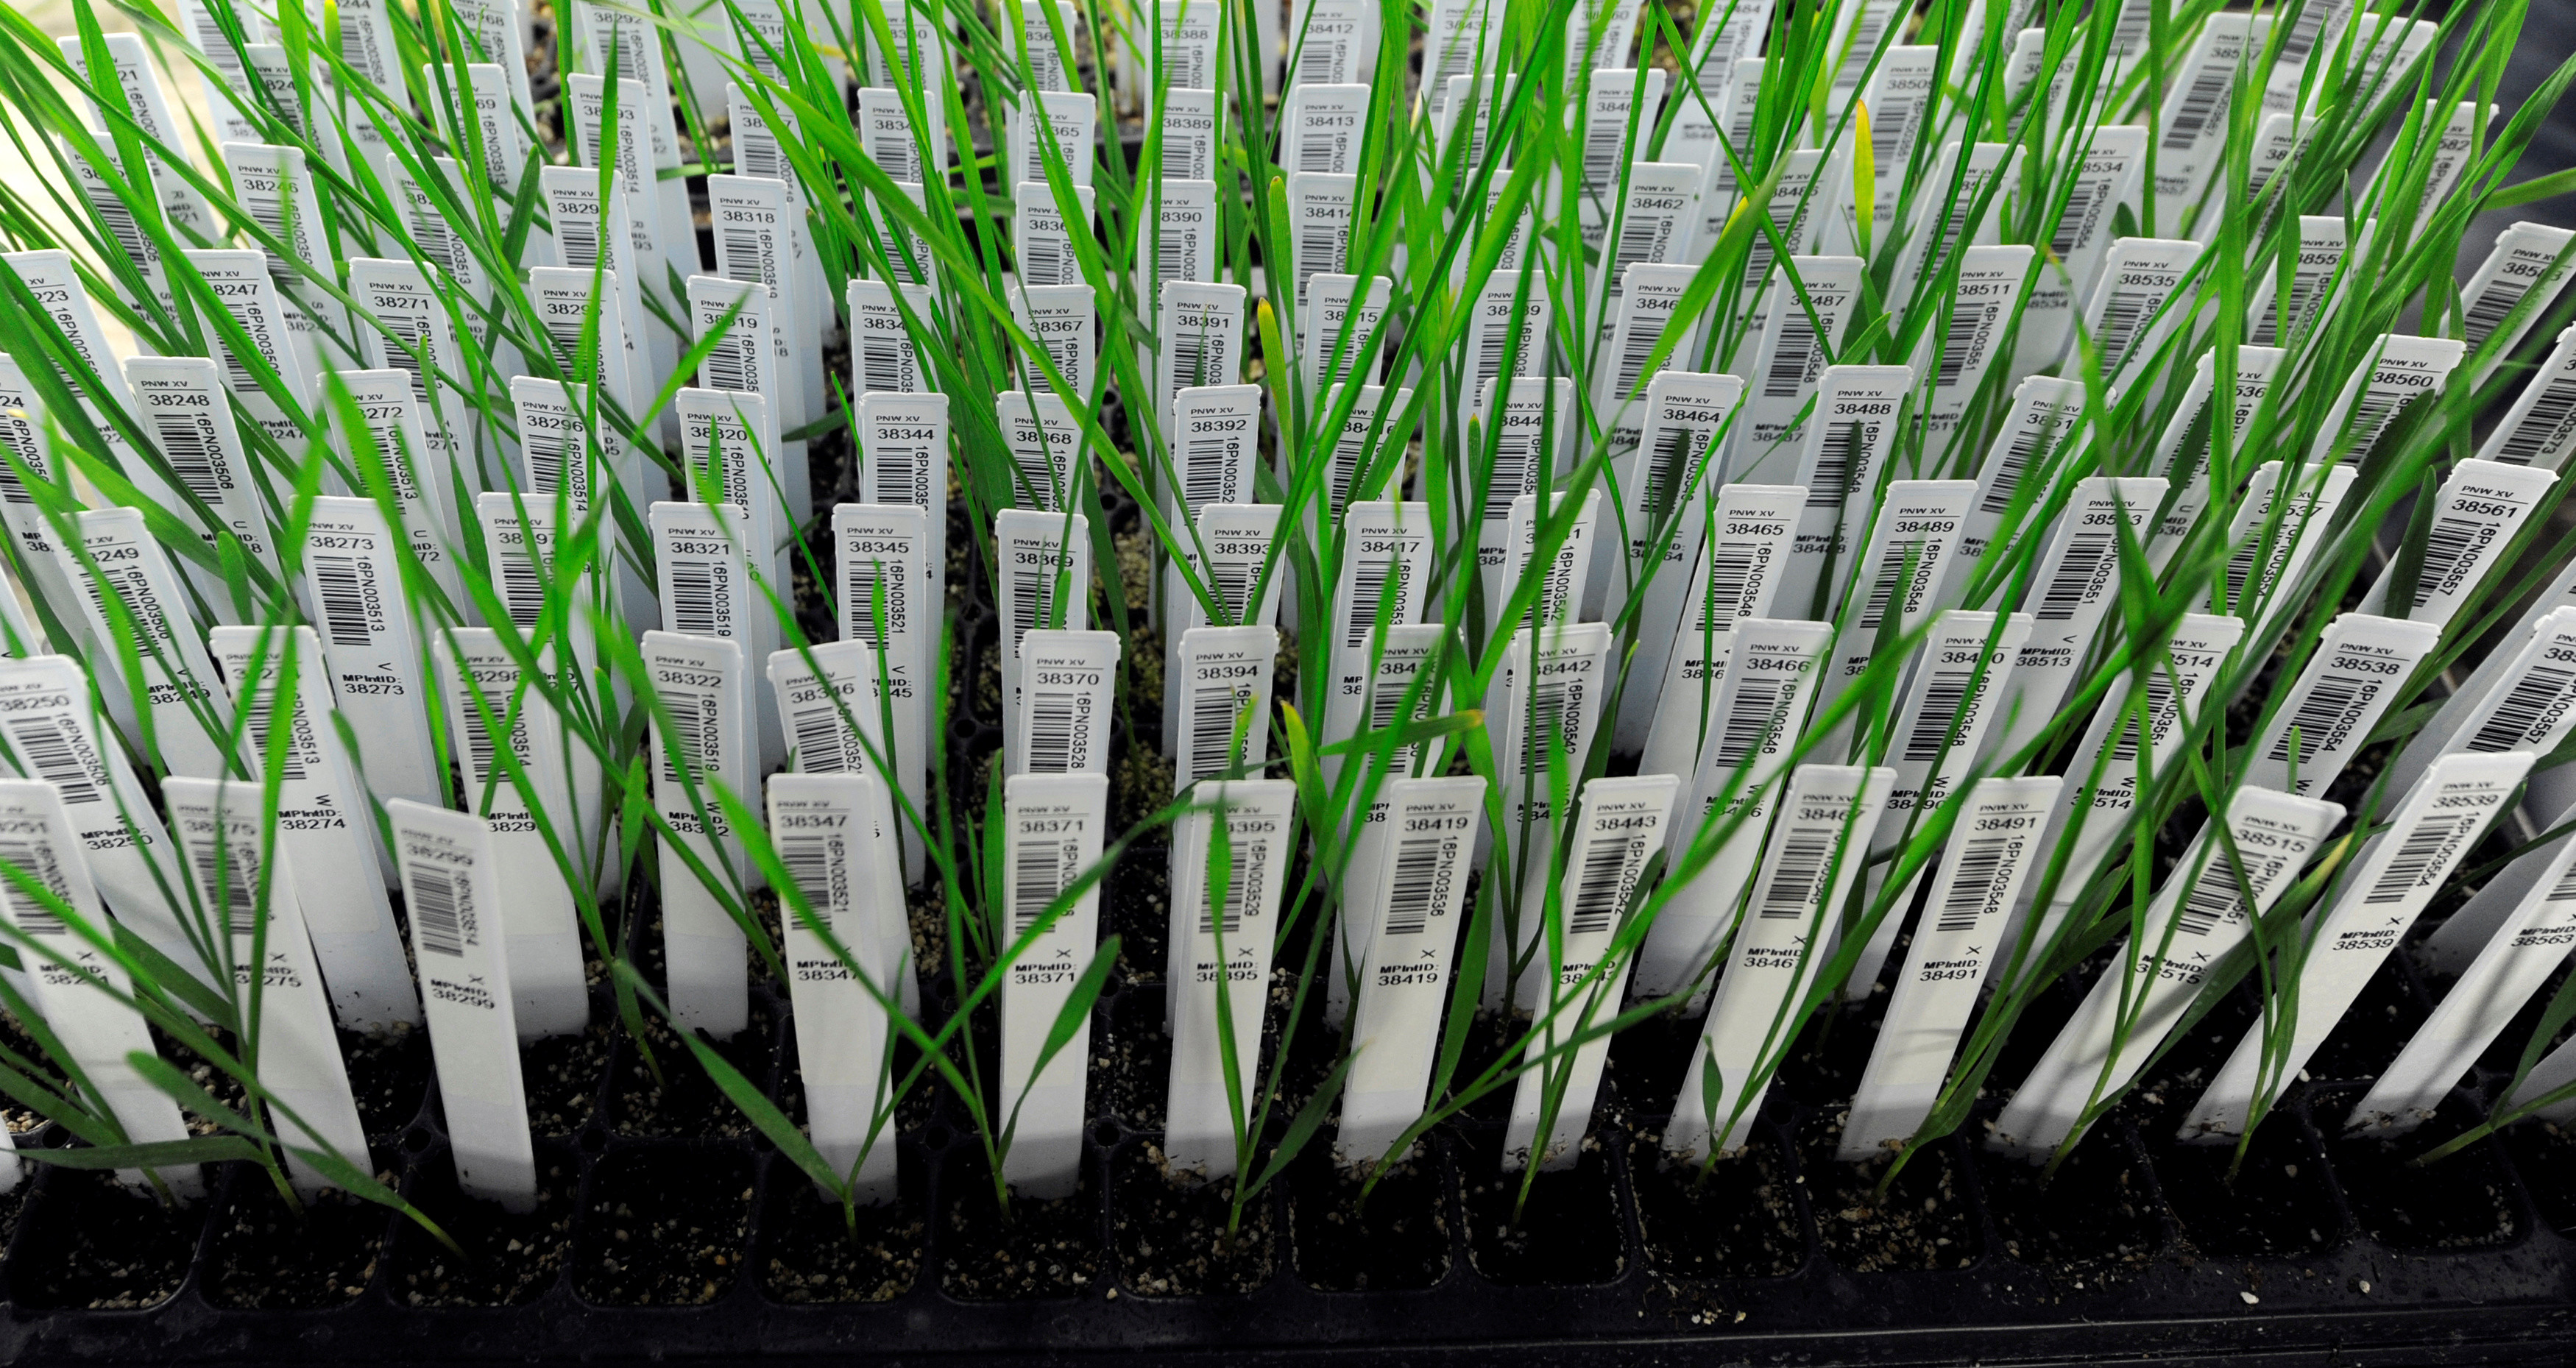 In a refrigerated greenhouse that mimics winter, individually-tagged hybrid wheat sprouts grow in 45-degree Fahrenheit temperatures at the bio-technology company Syngenta's research farm near Junction City, Kansas, U.S. May 4, 2017.  REUTERS/Dave Kaup - RC11A2830D80